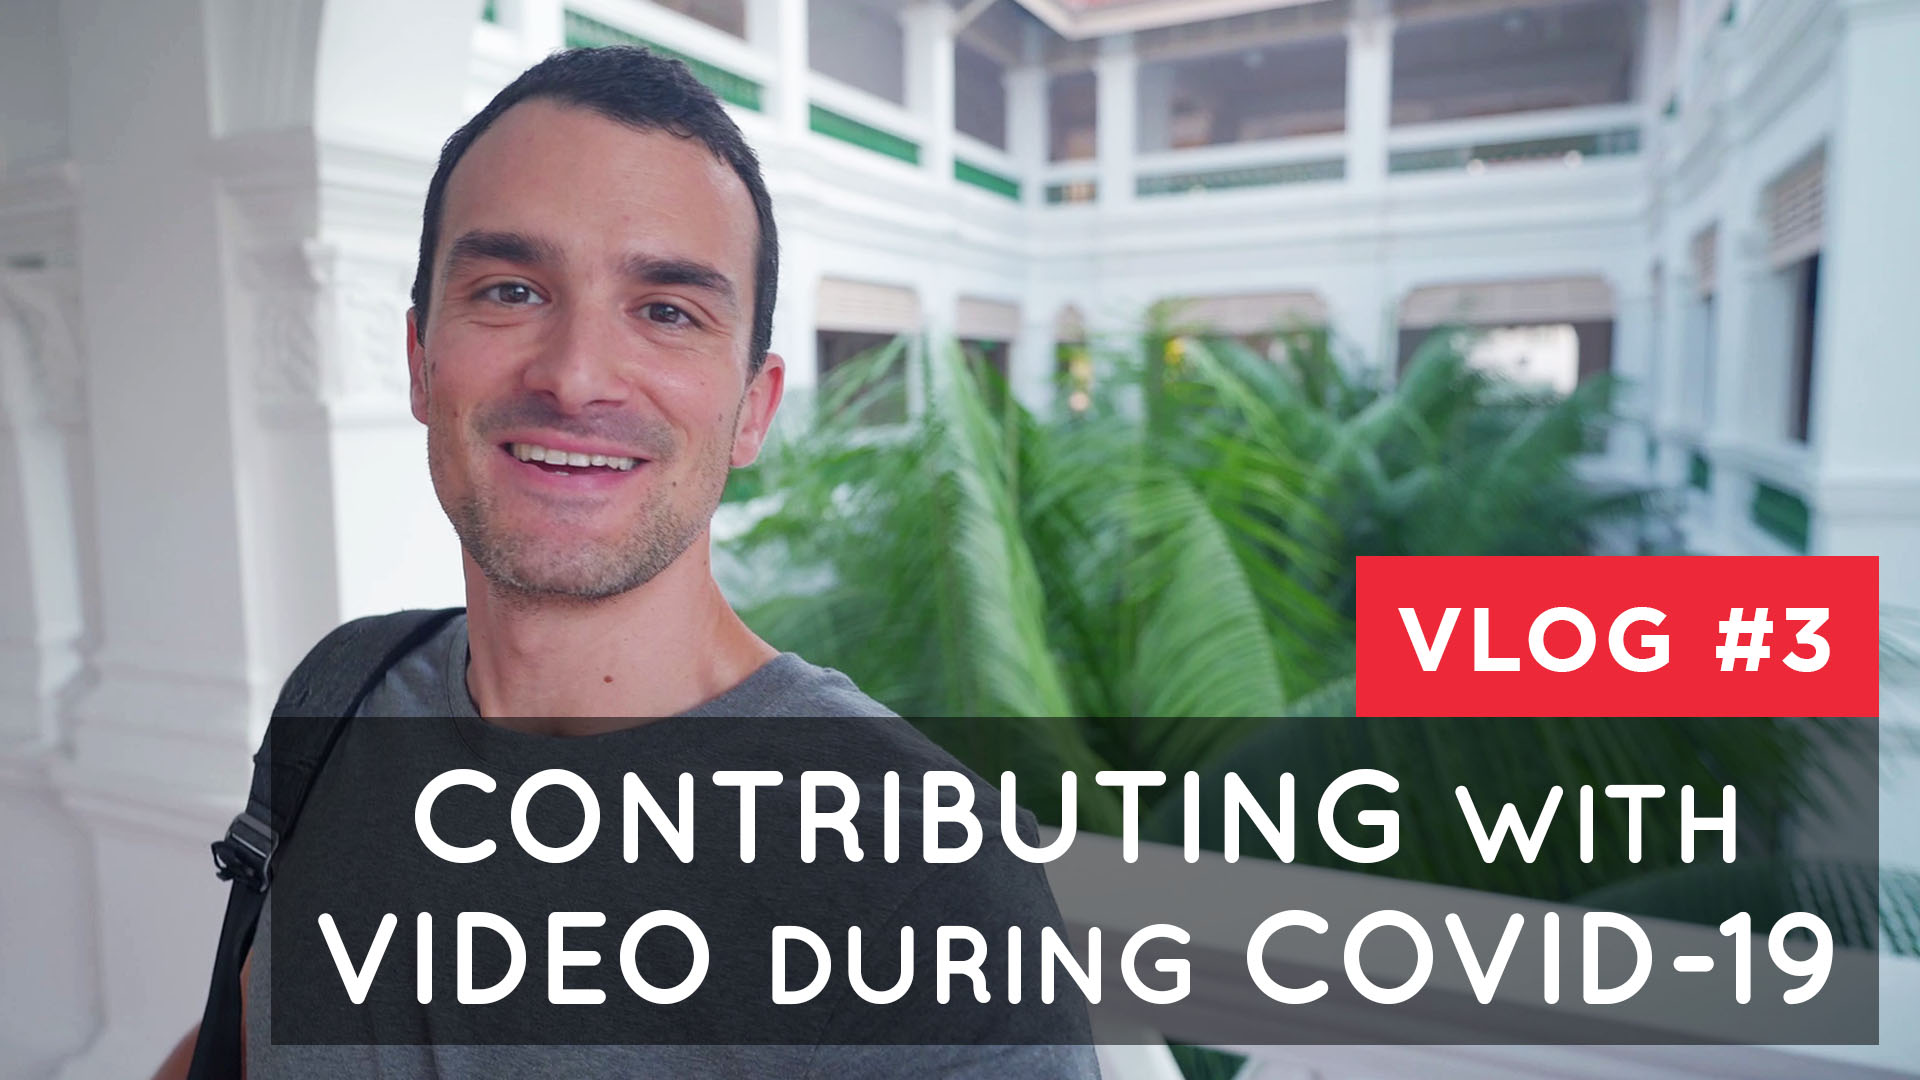 Contributing with video during COVID-19